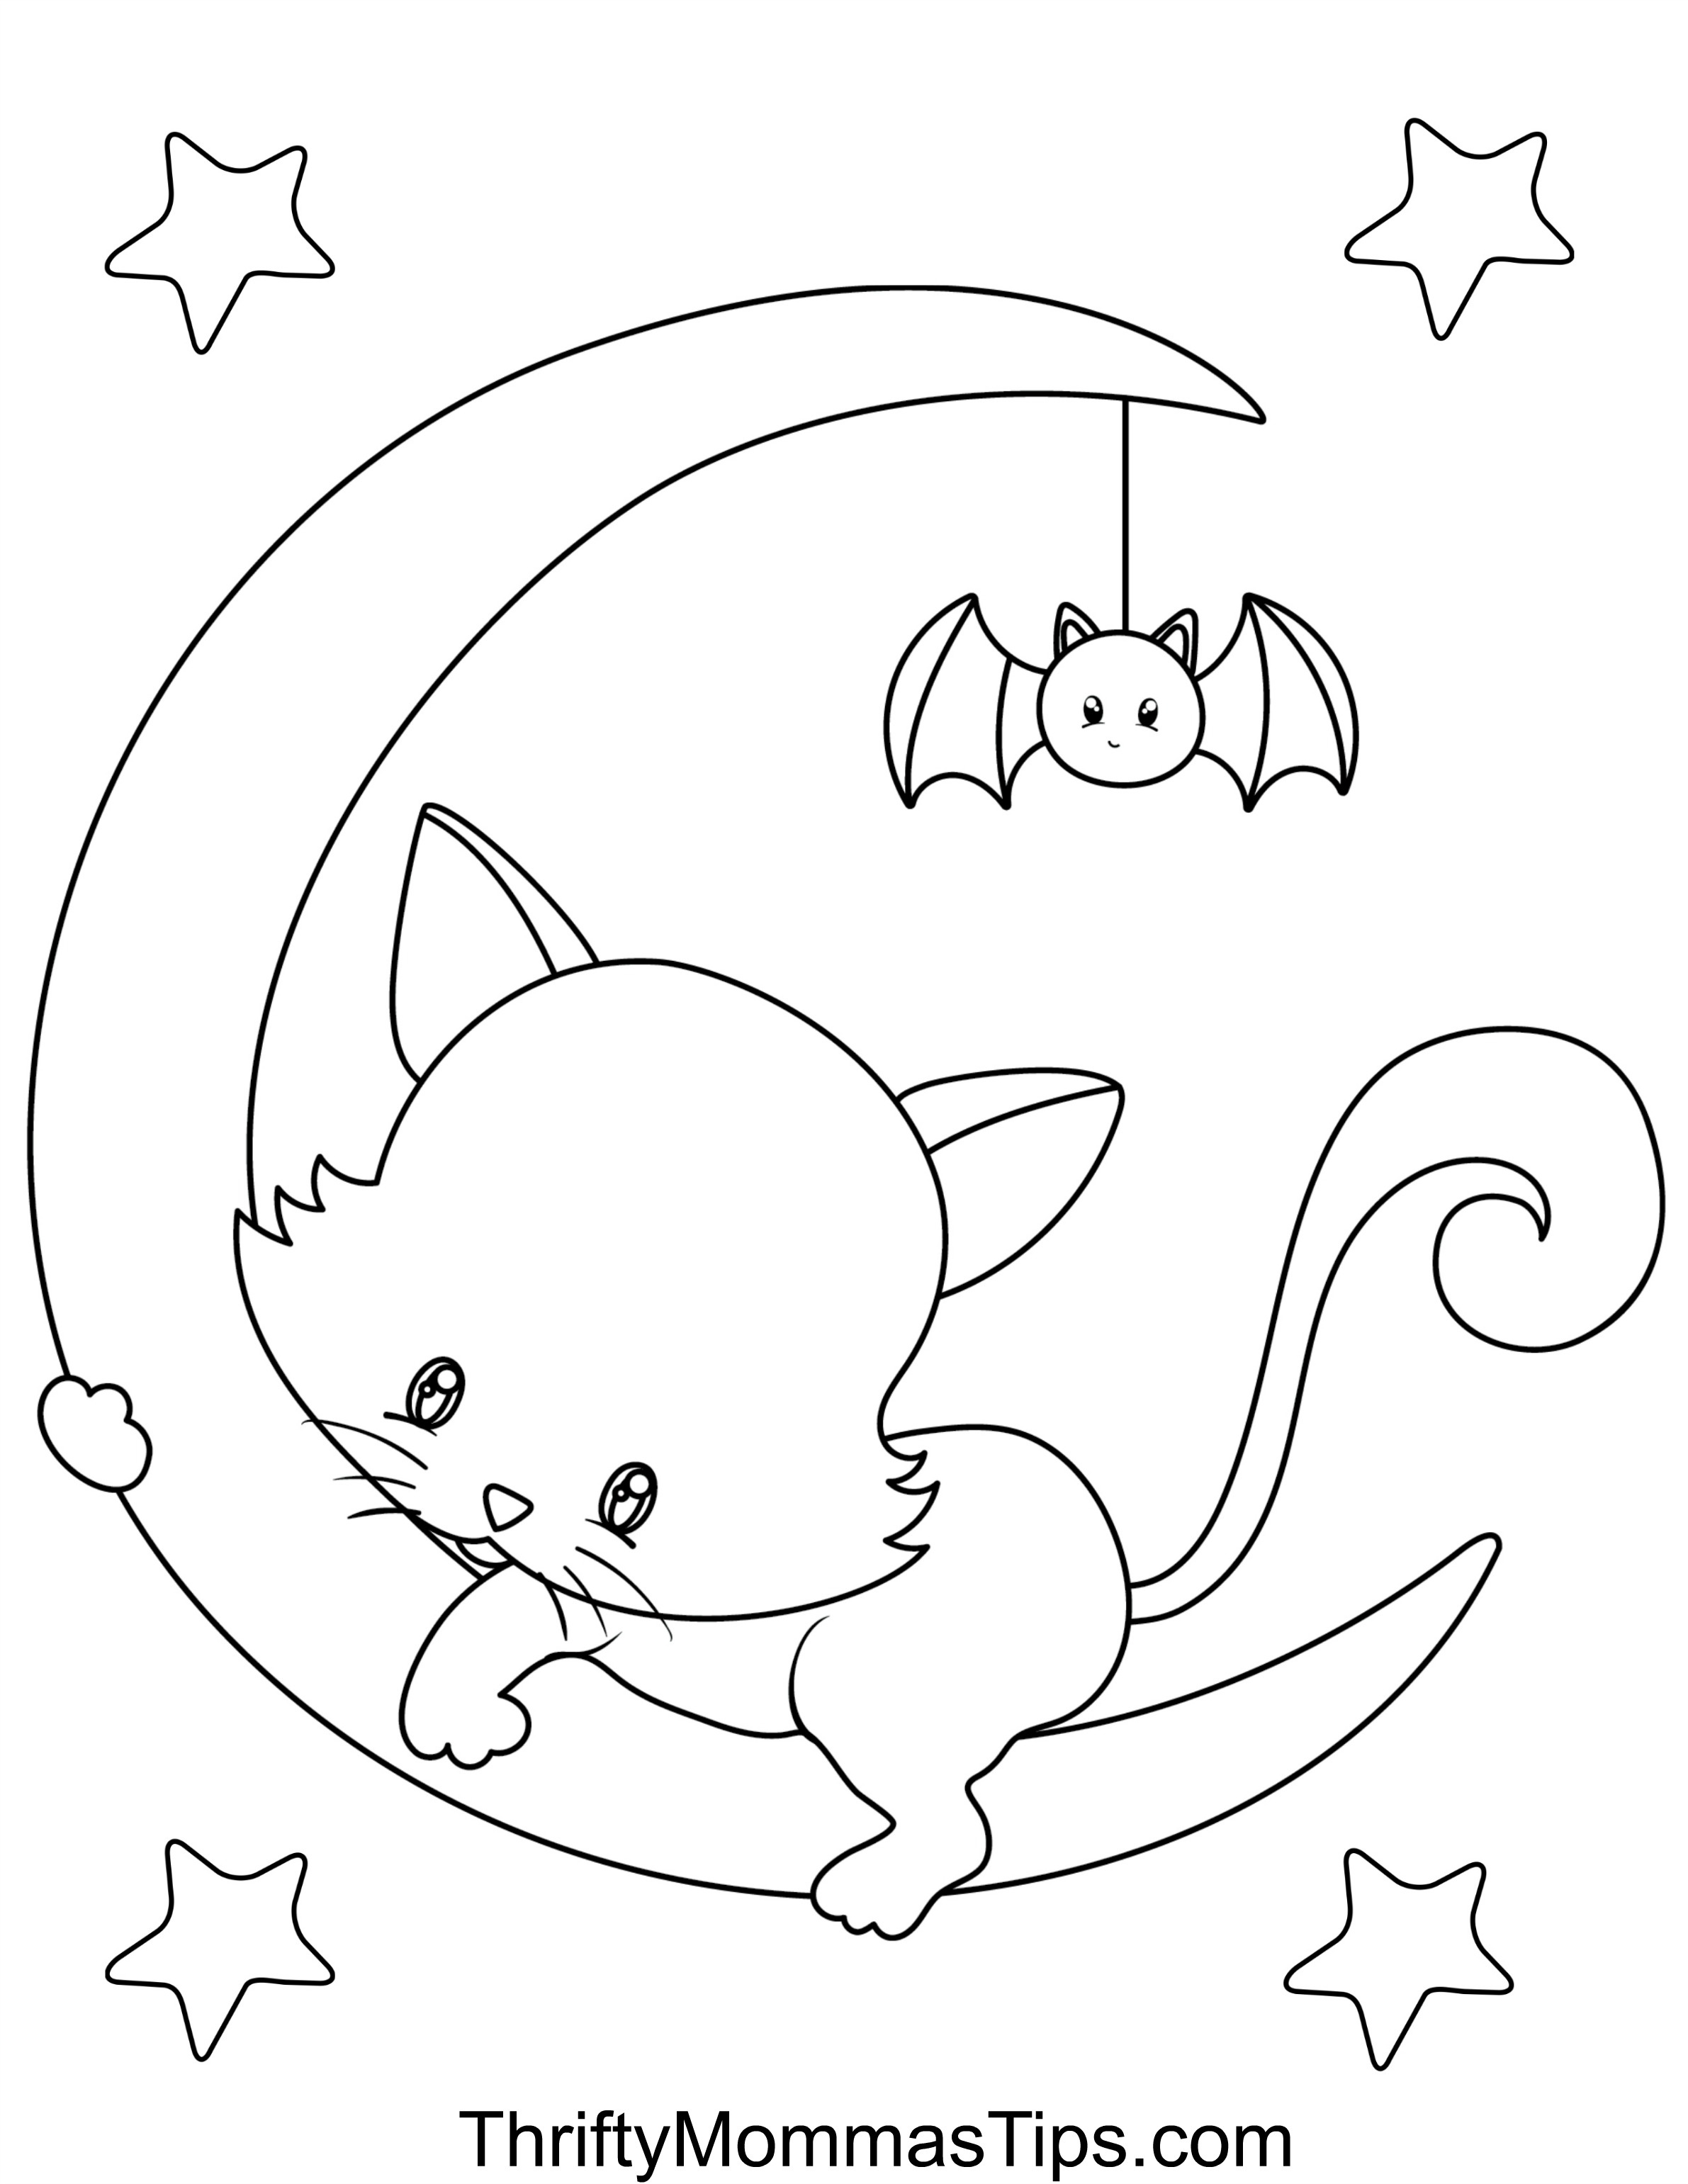 Halloween Cats Colouring Book - 9 pages - Thrifty Mommas Tips